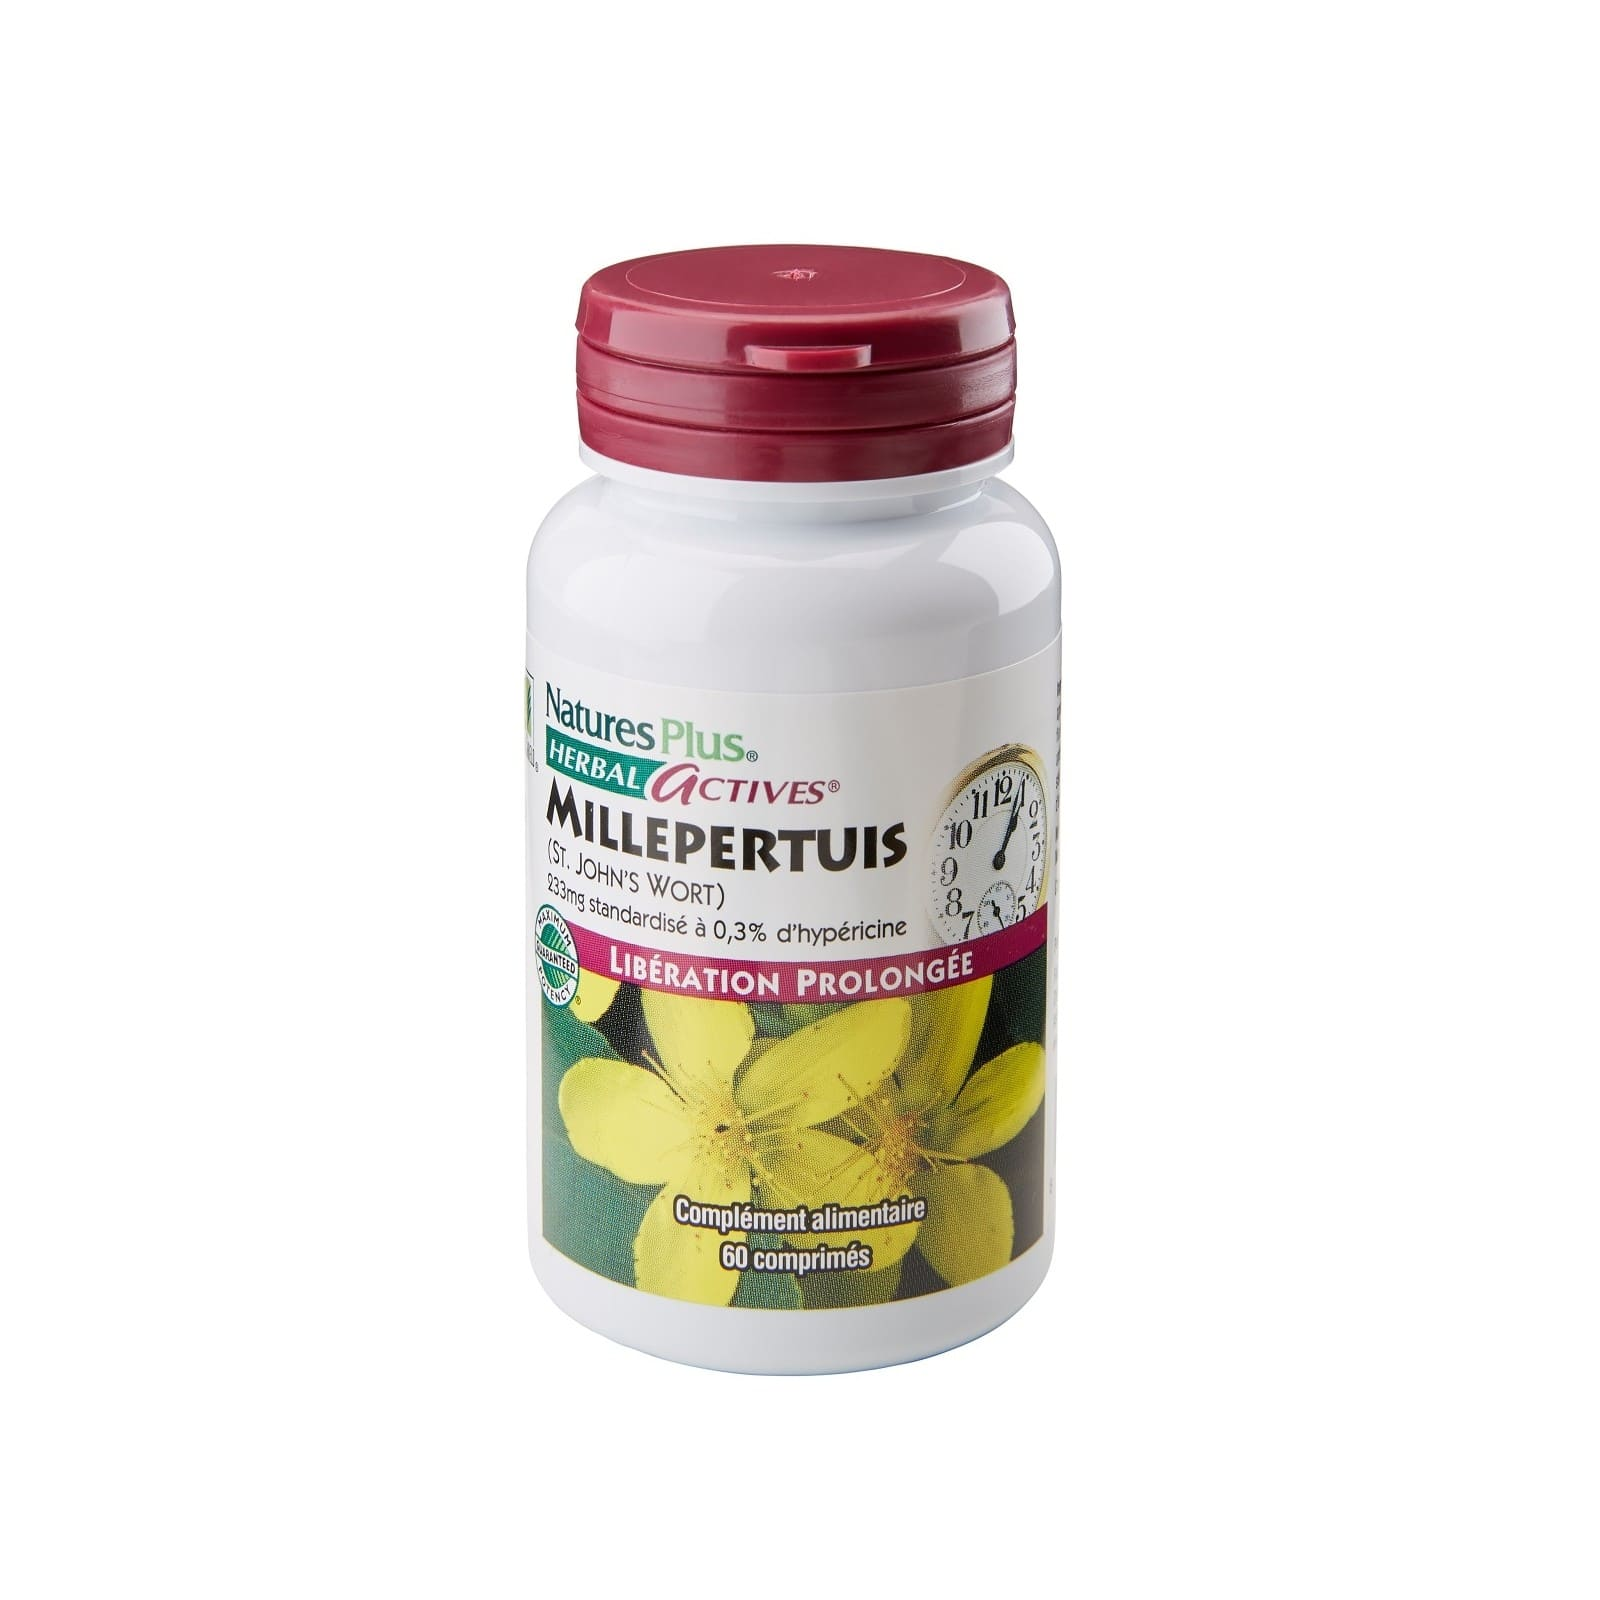 Millepertuis Nature's Plus